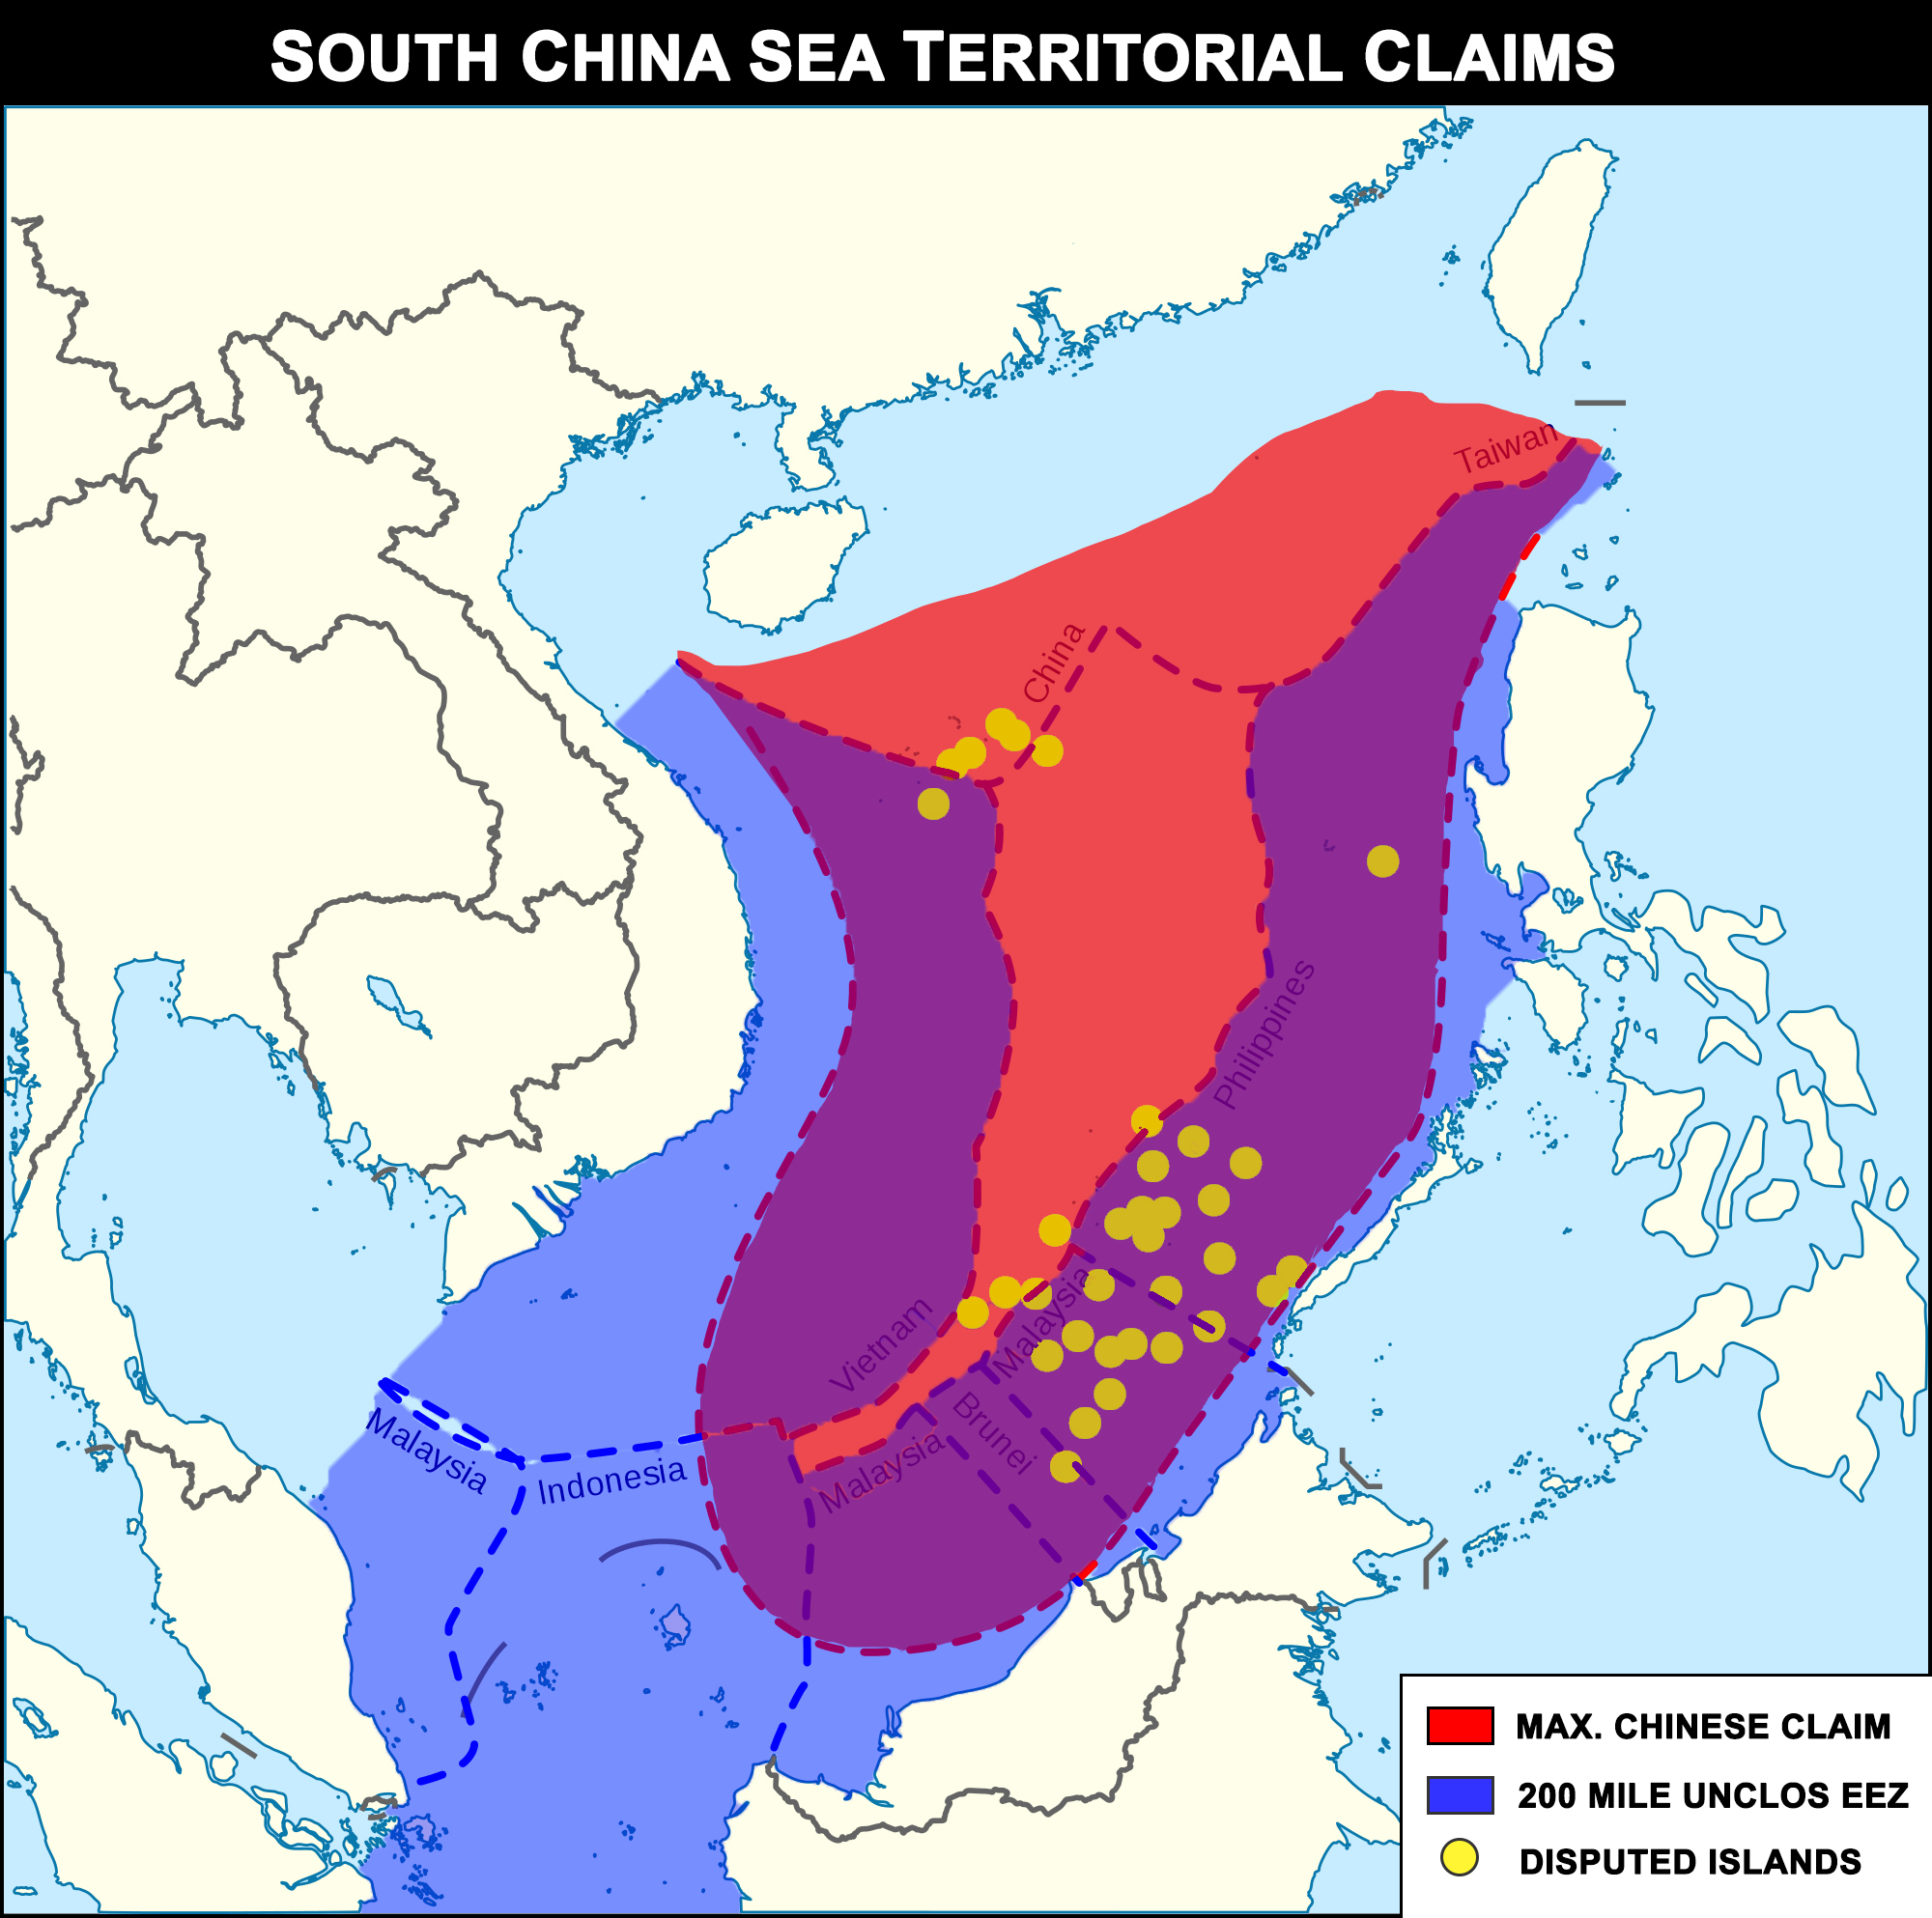 CHINESE TERRITORIAL CLAIMS SOUTH CHINA SEA